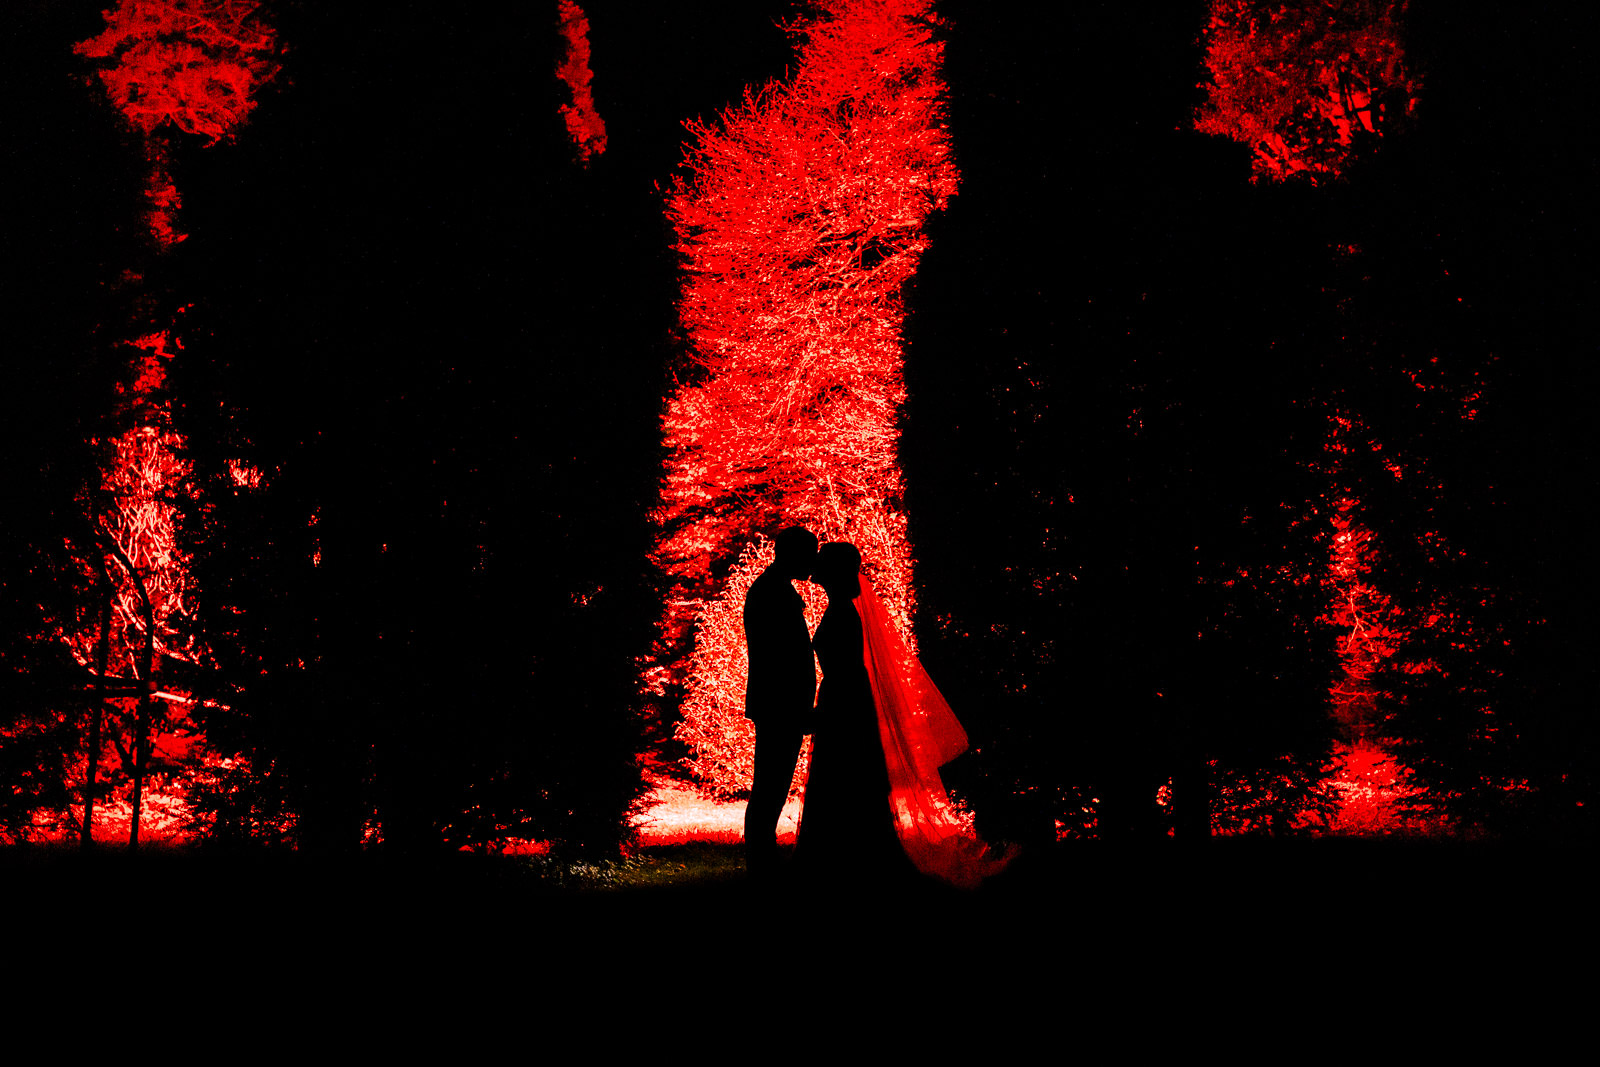 Miskin Manor Wedding Photography - Art by Design Photography - Night-time portrait